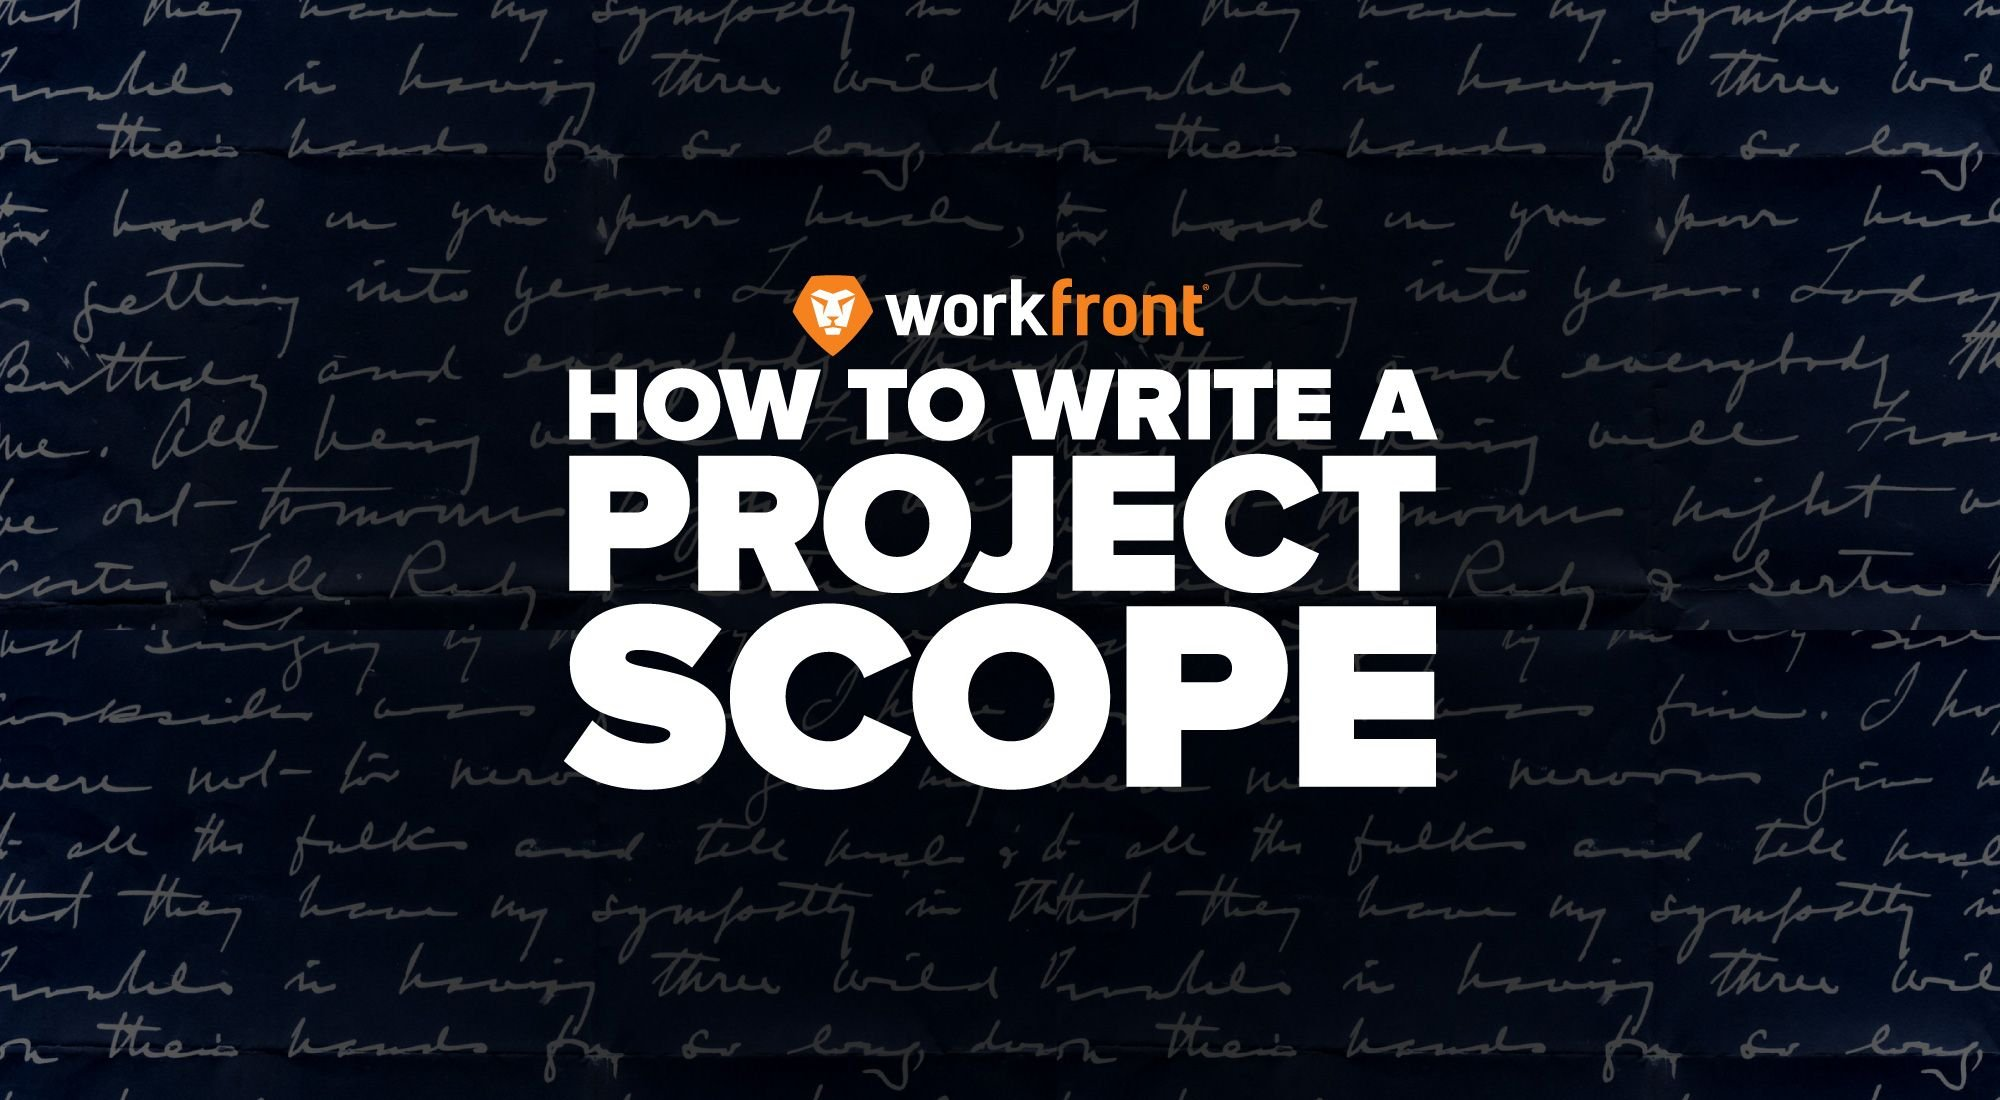 how to write a project scope